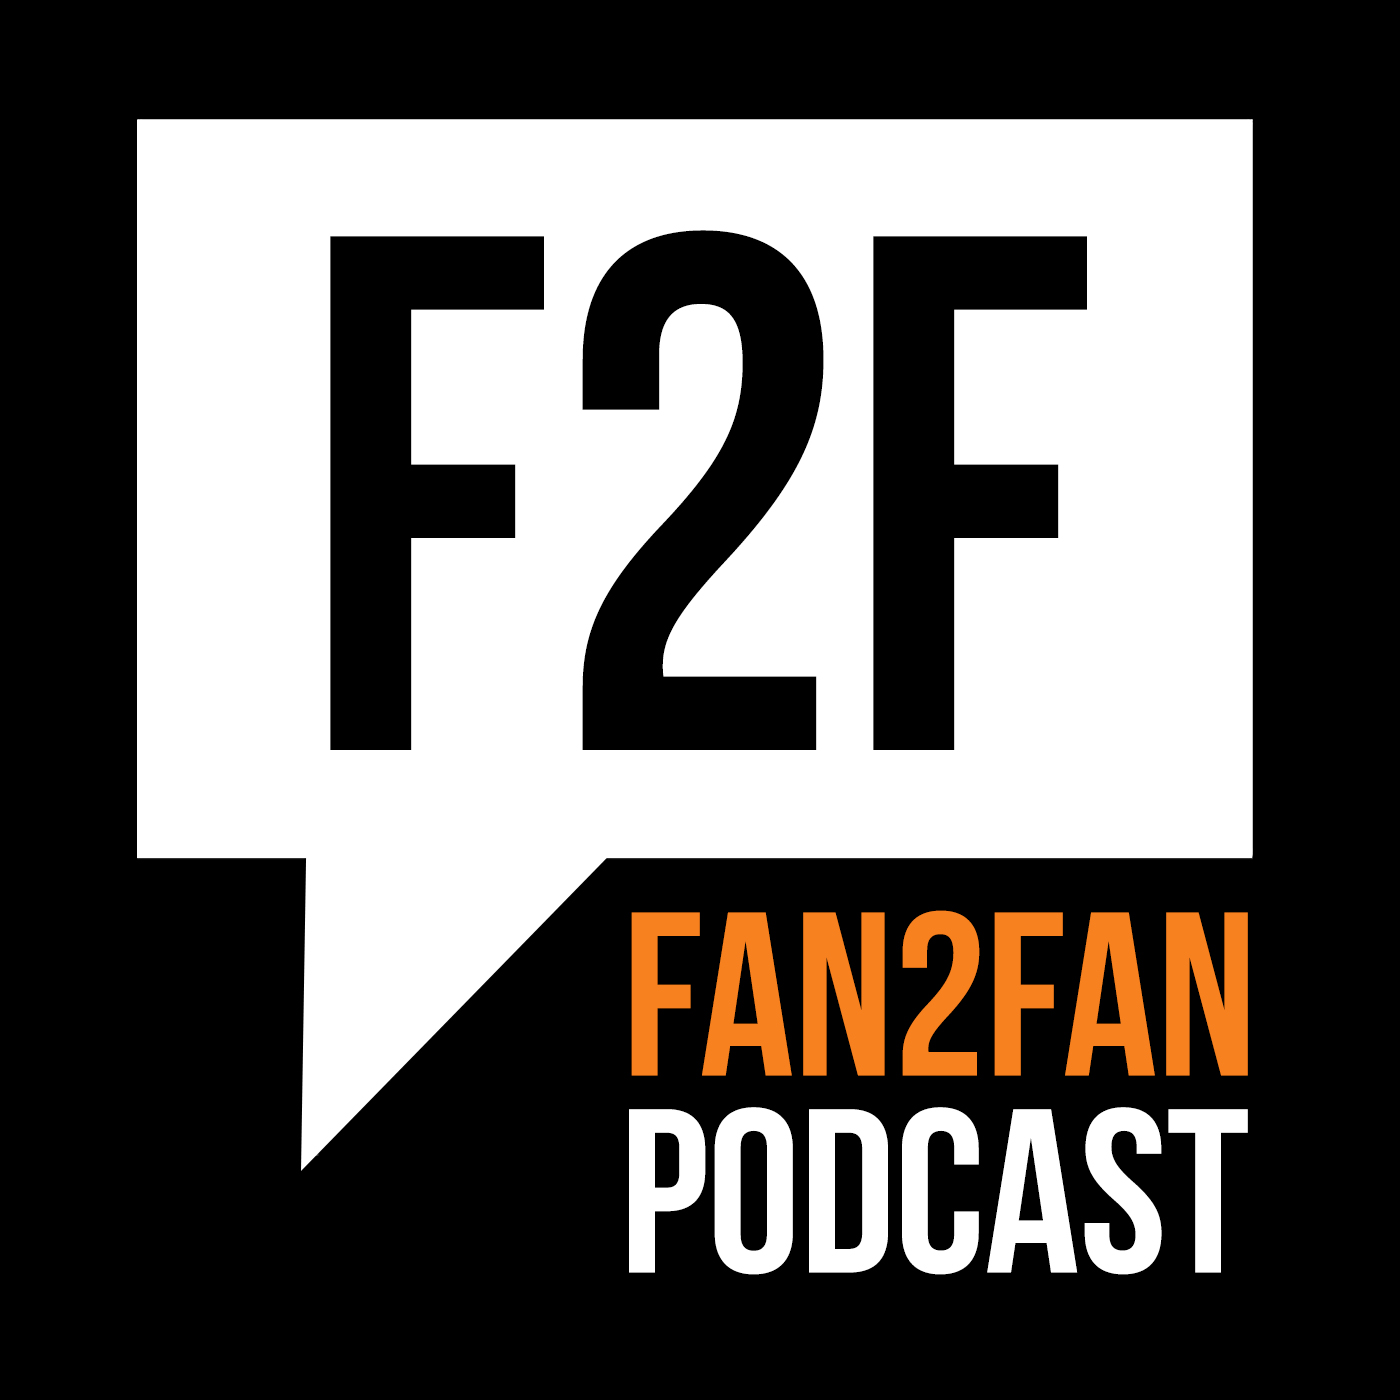 Fan2Fan Podcast - A Conversation Between Fans About Movies, Comics, TV, Video Games, Toys, Cartoons, And All Things Pop Culture